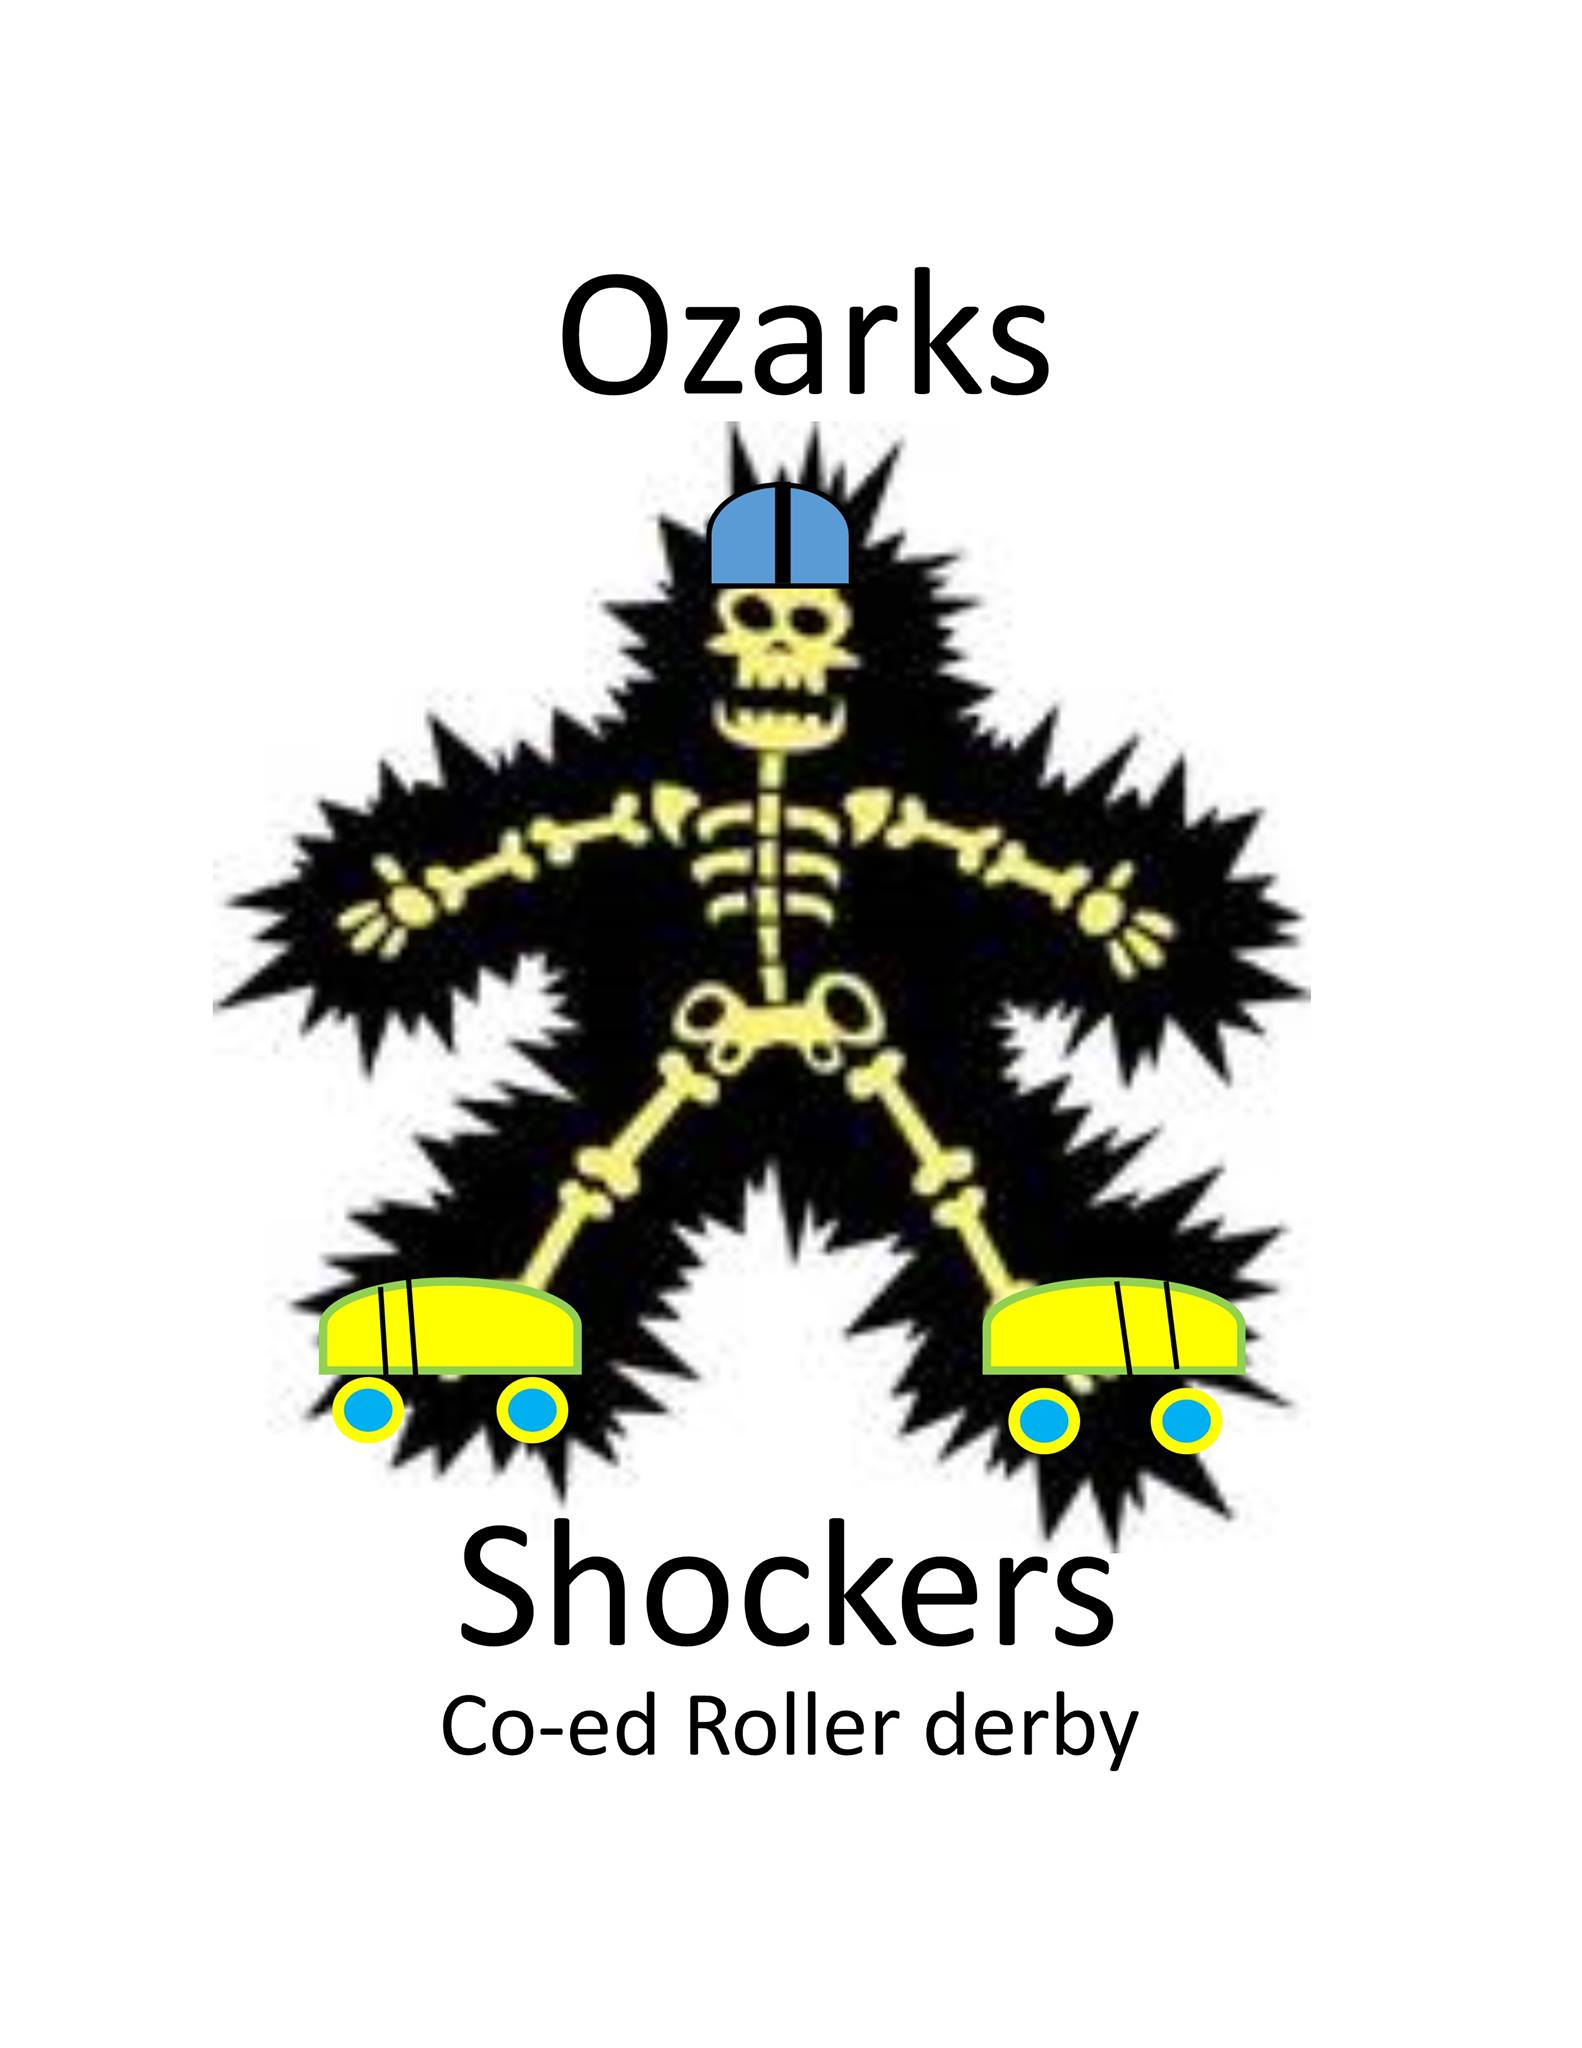 Ozark Shockers